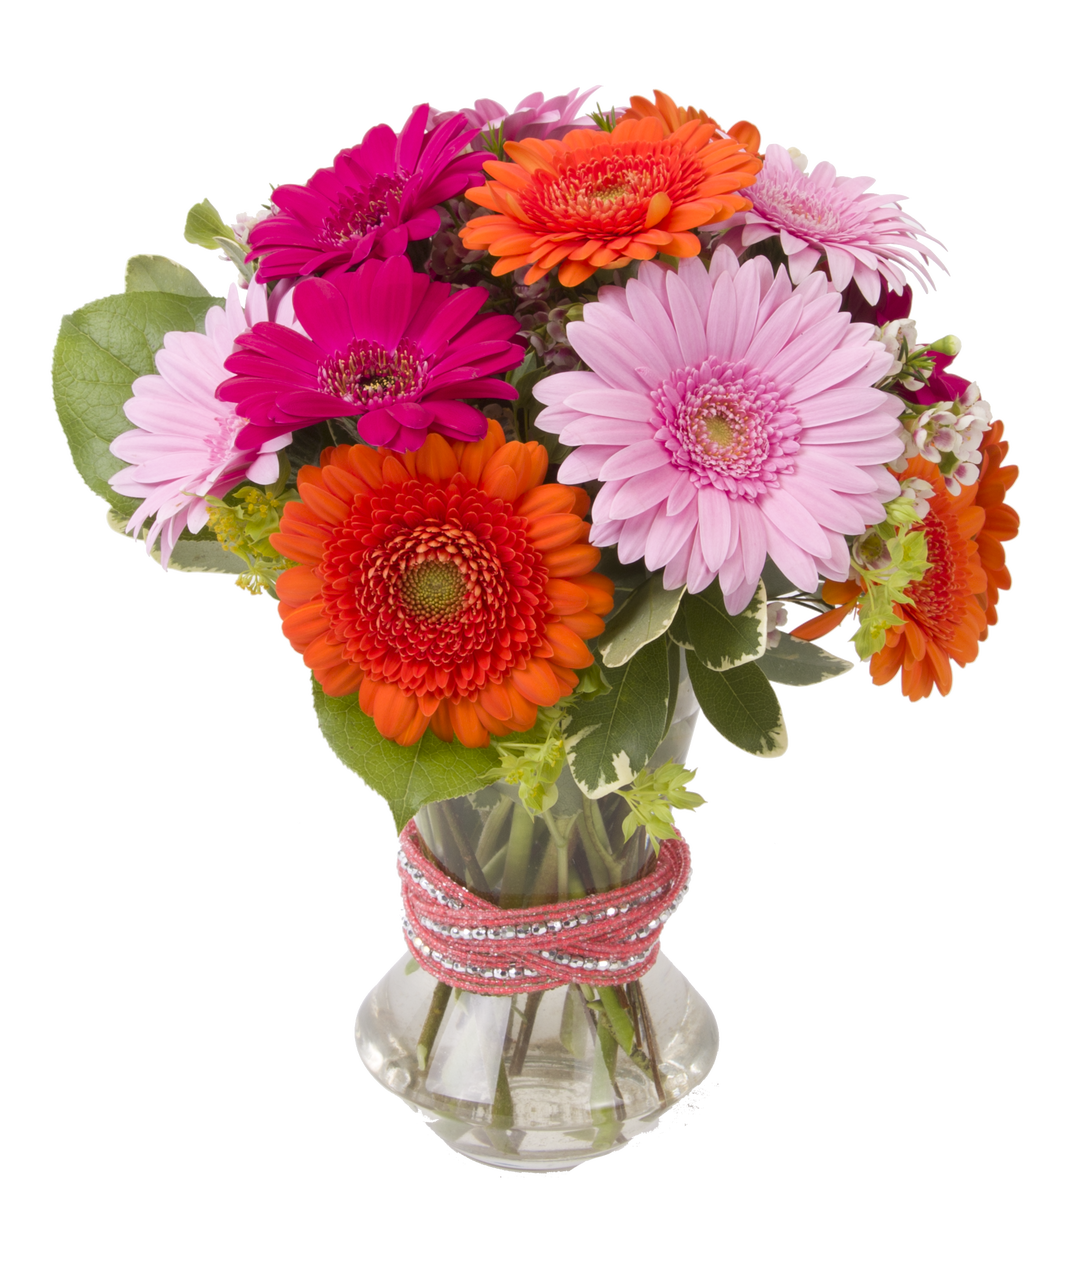 This Lovely Mixture Of Colorful Gerbera S Daisy S Can Be Made To Match A Sparkling Beaded Cuff Bracelet O Flower Arrangements Order Flowers Online Garden Vases